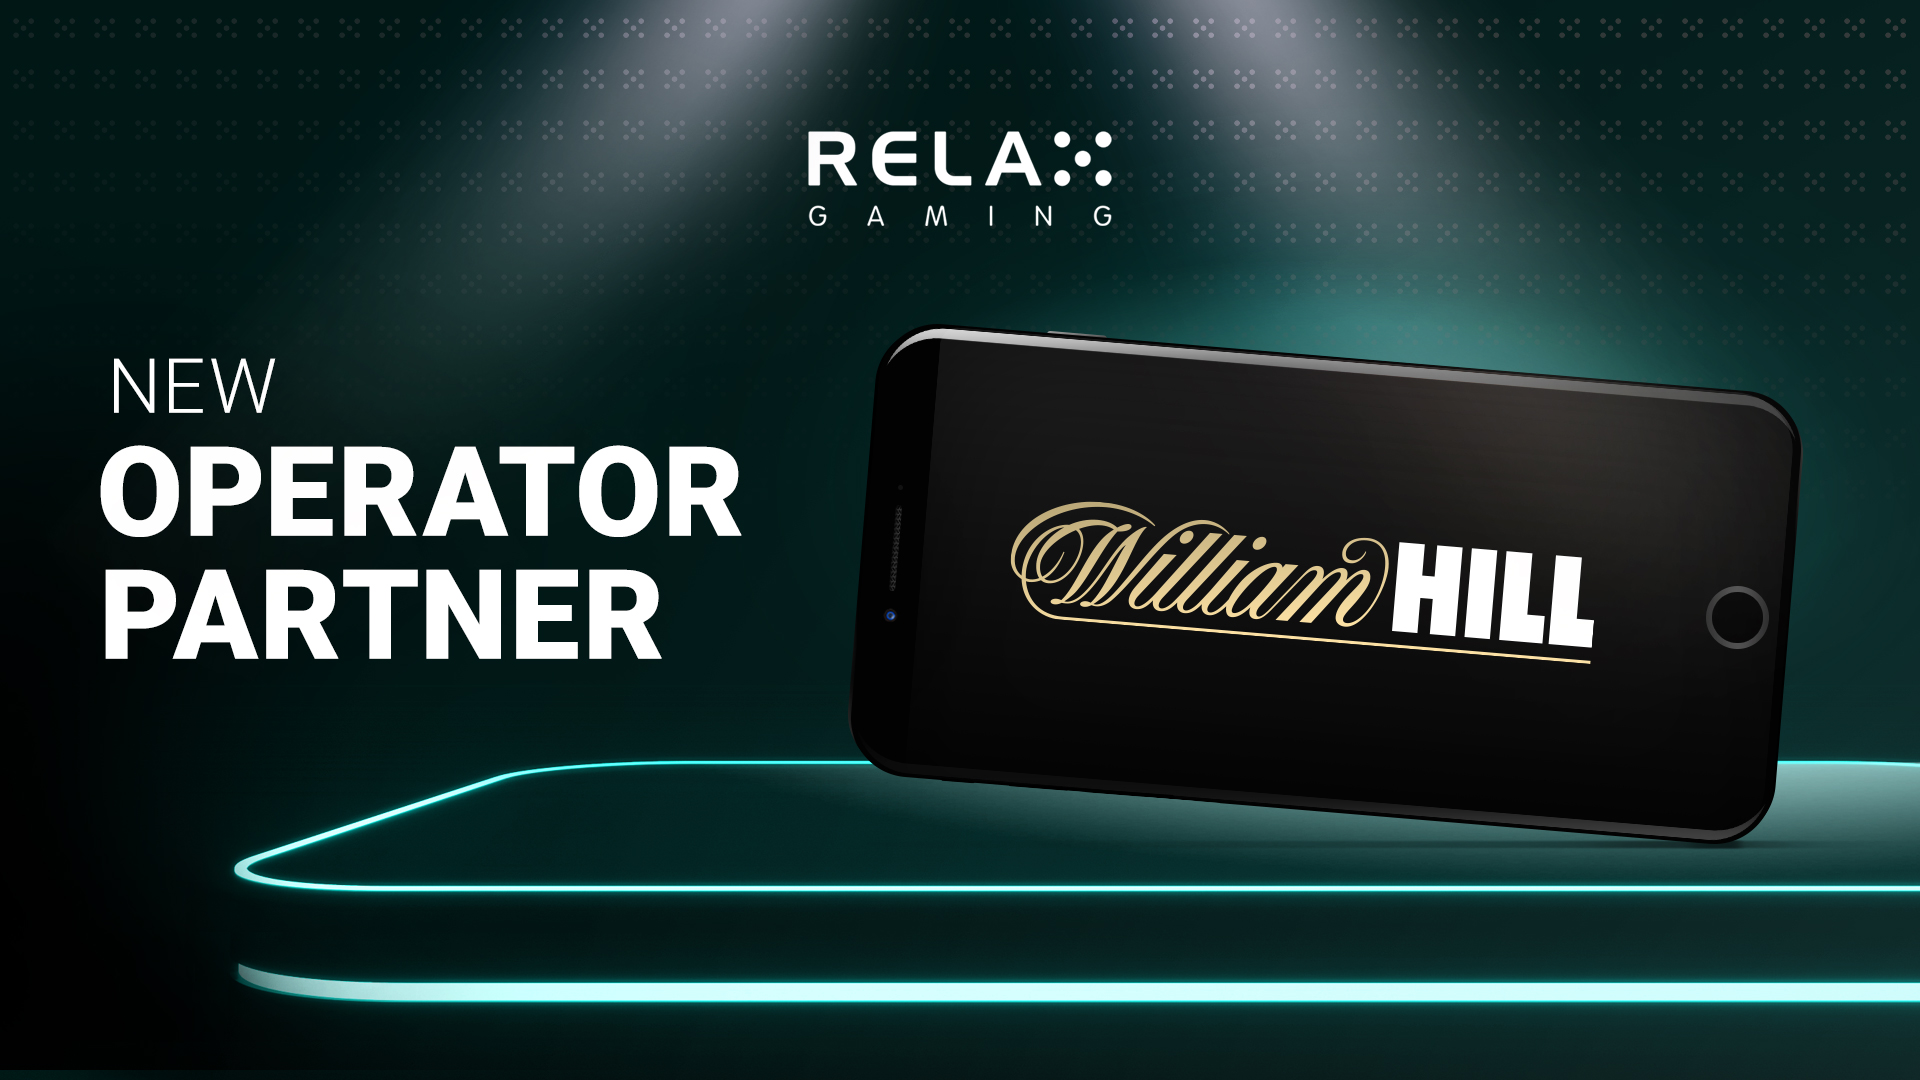 Relax Gaming partners William Hill in latest UK expansion